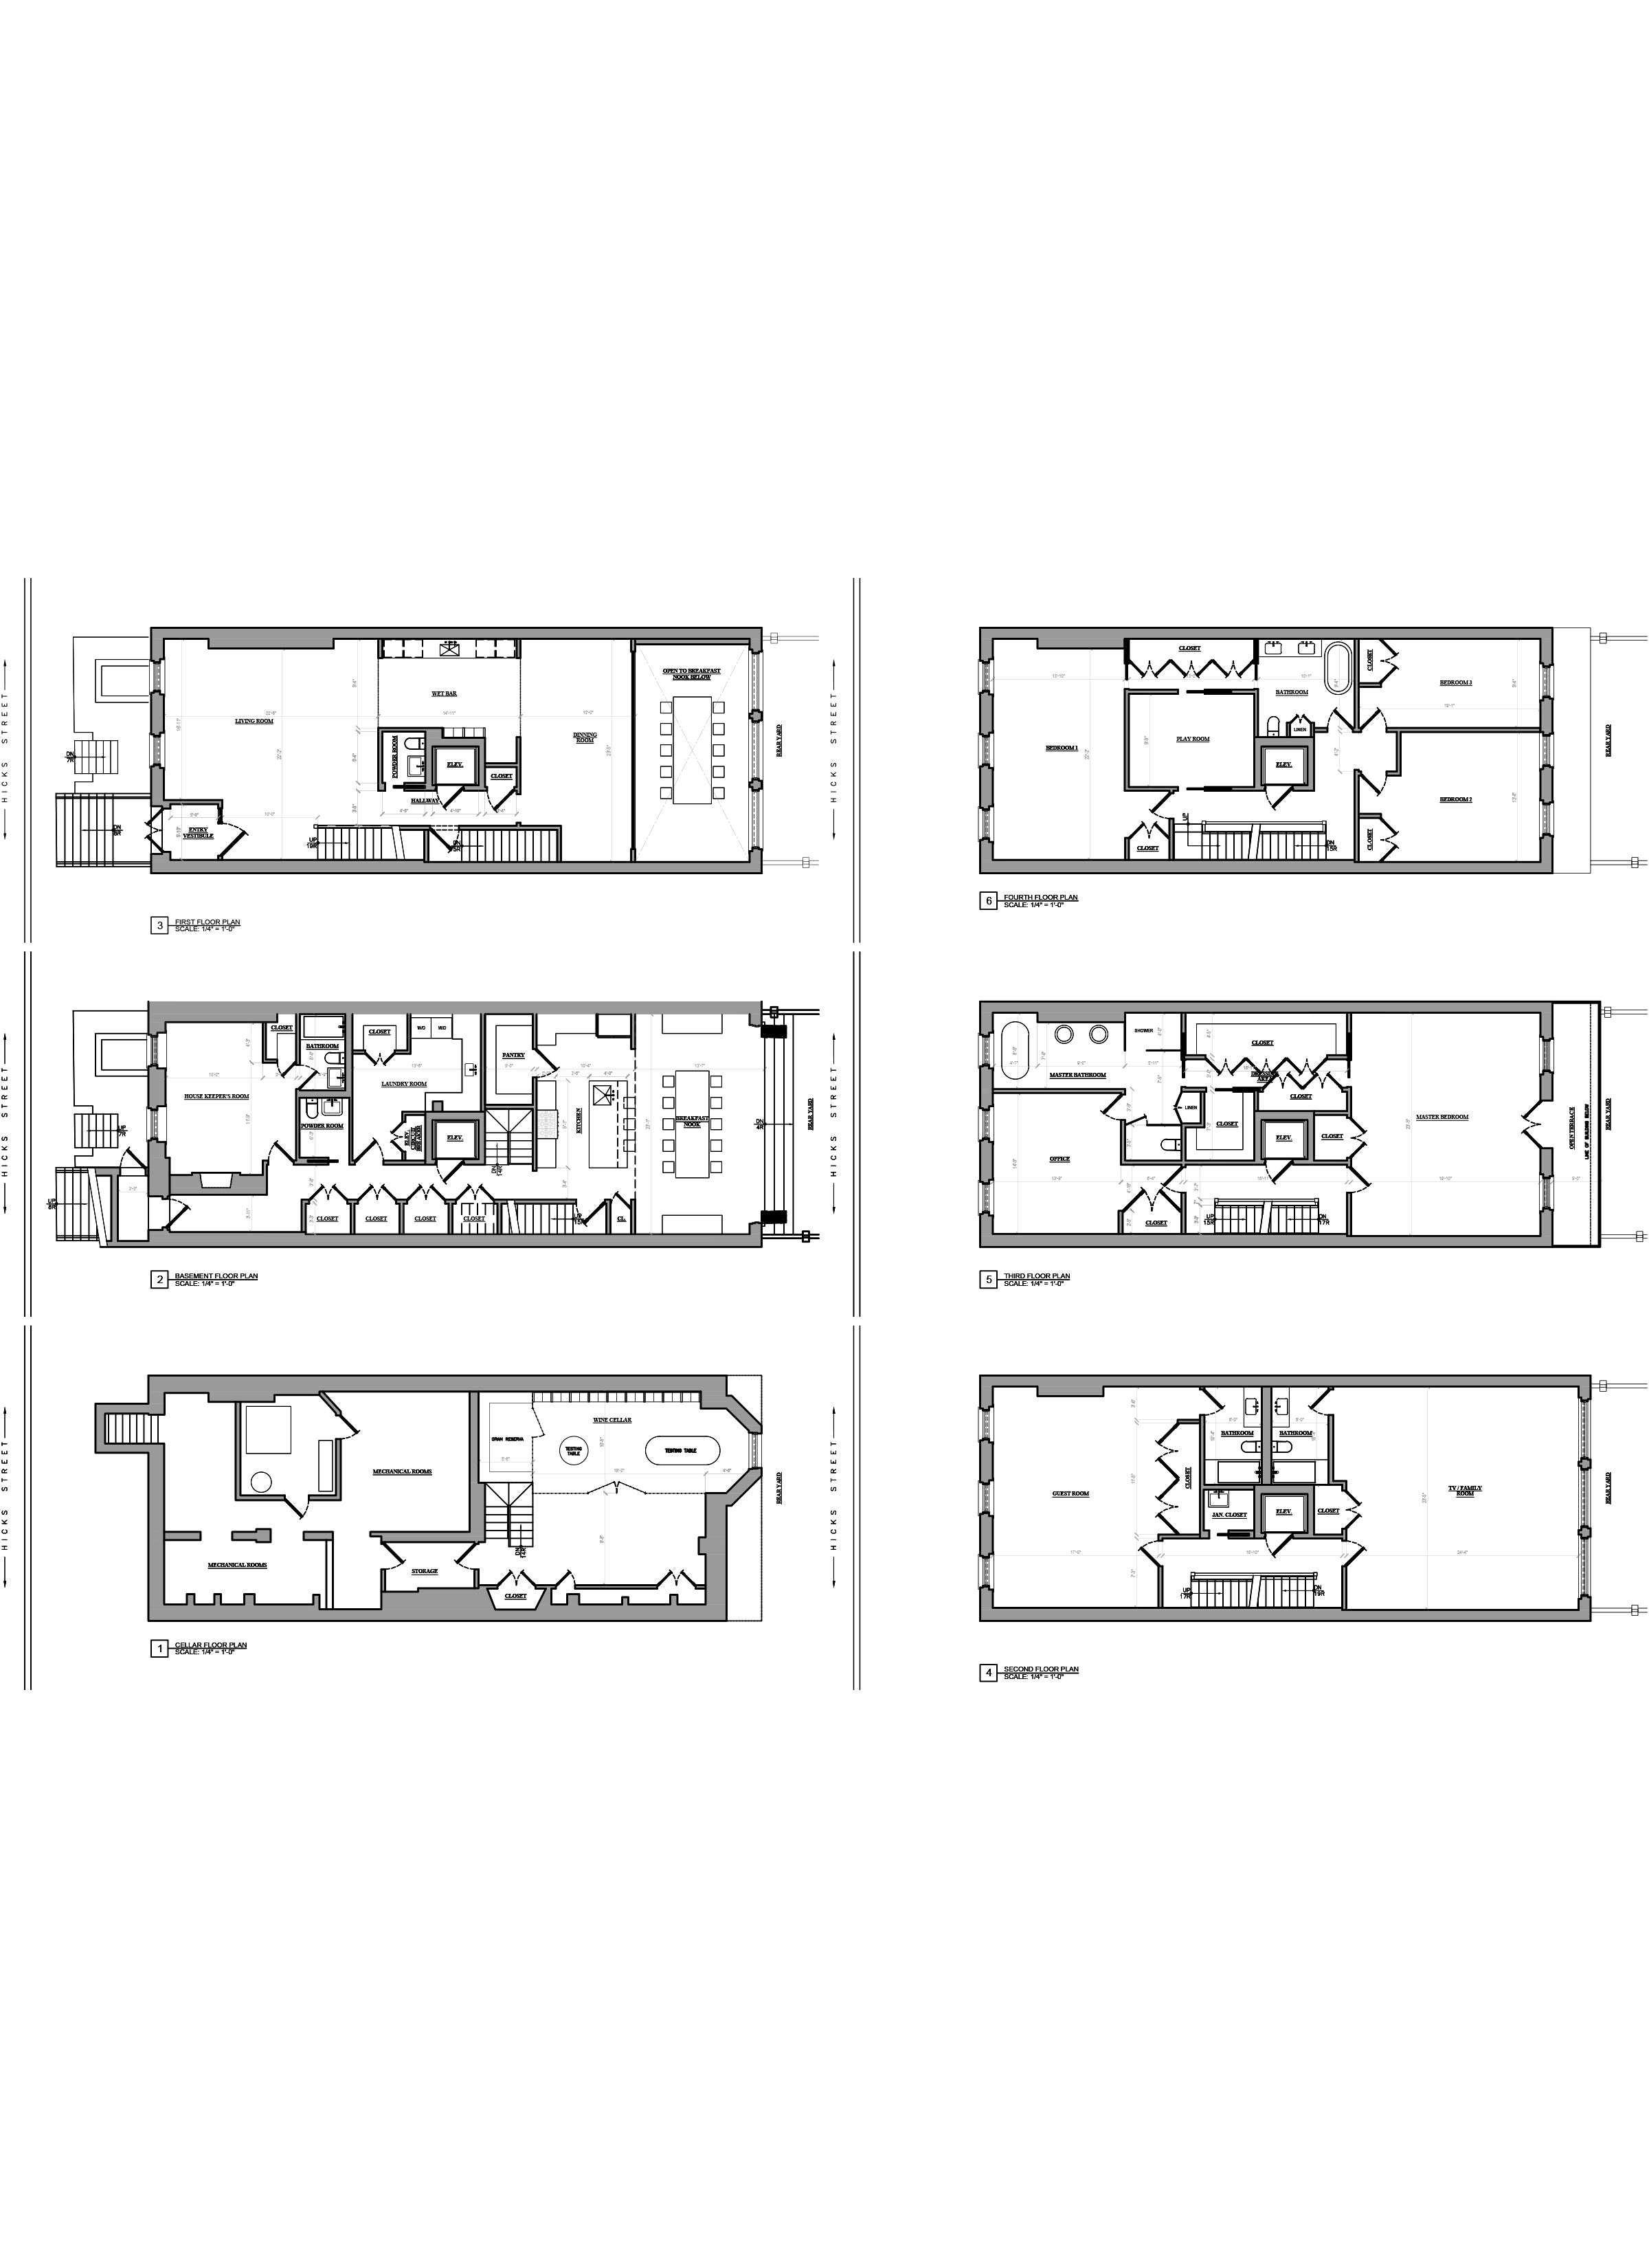 Floor plan design - AutoCAD drafting _Town house_NYC